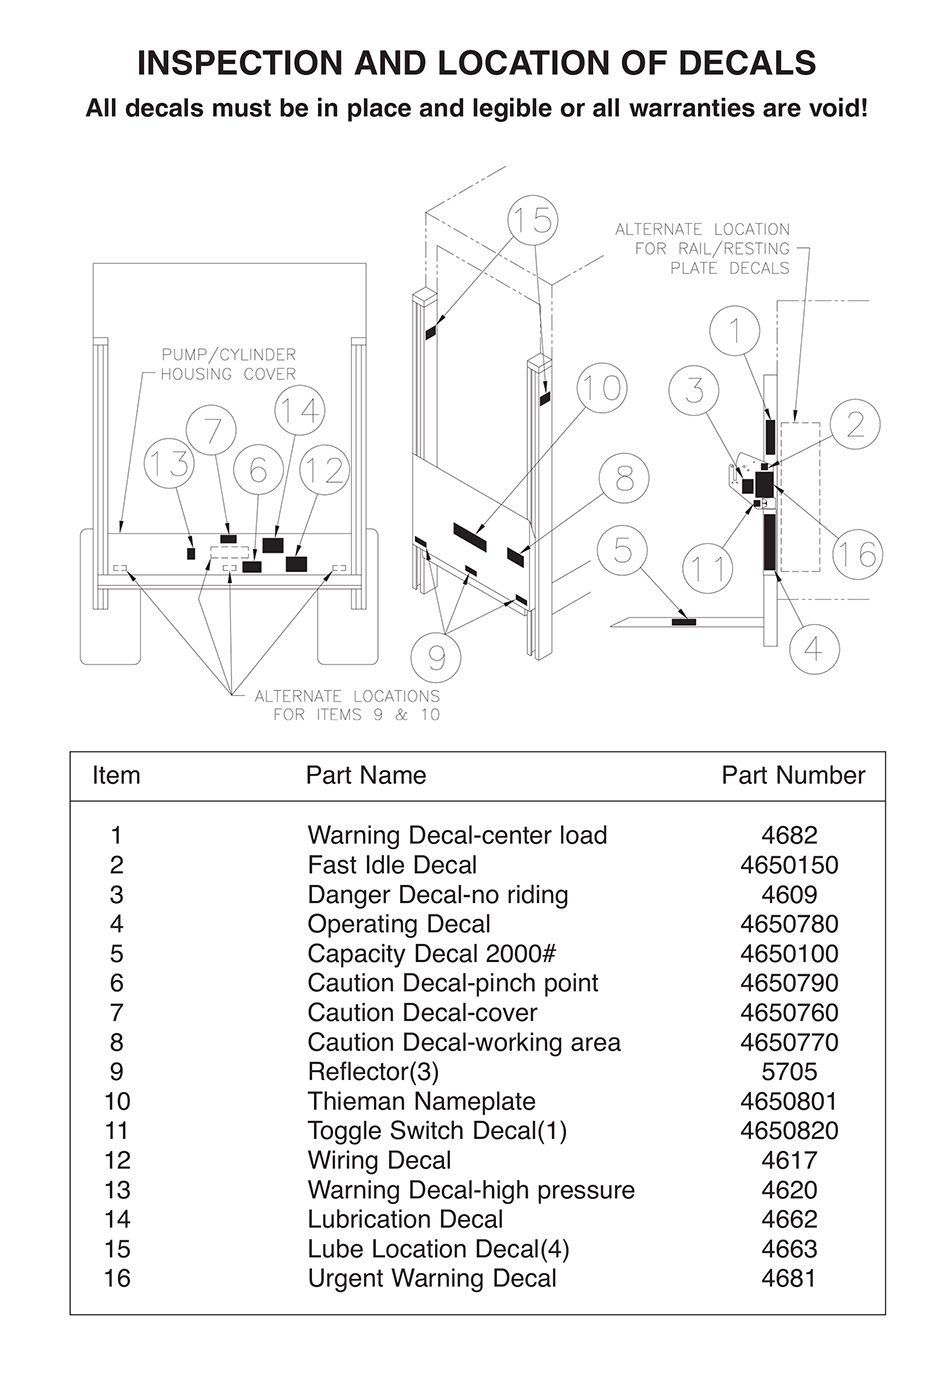 TVLR 20/20A Location of Decals Diagram